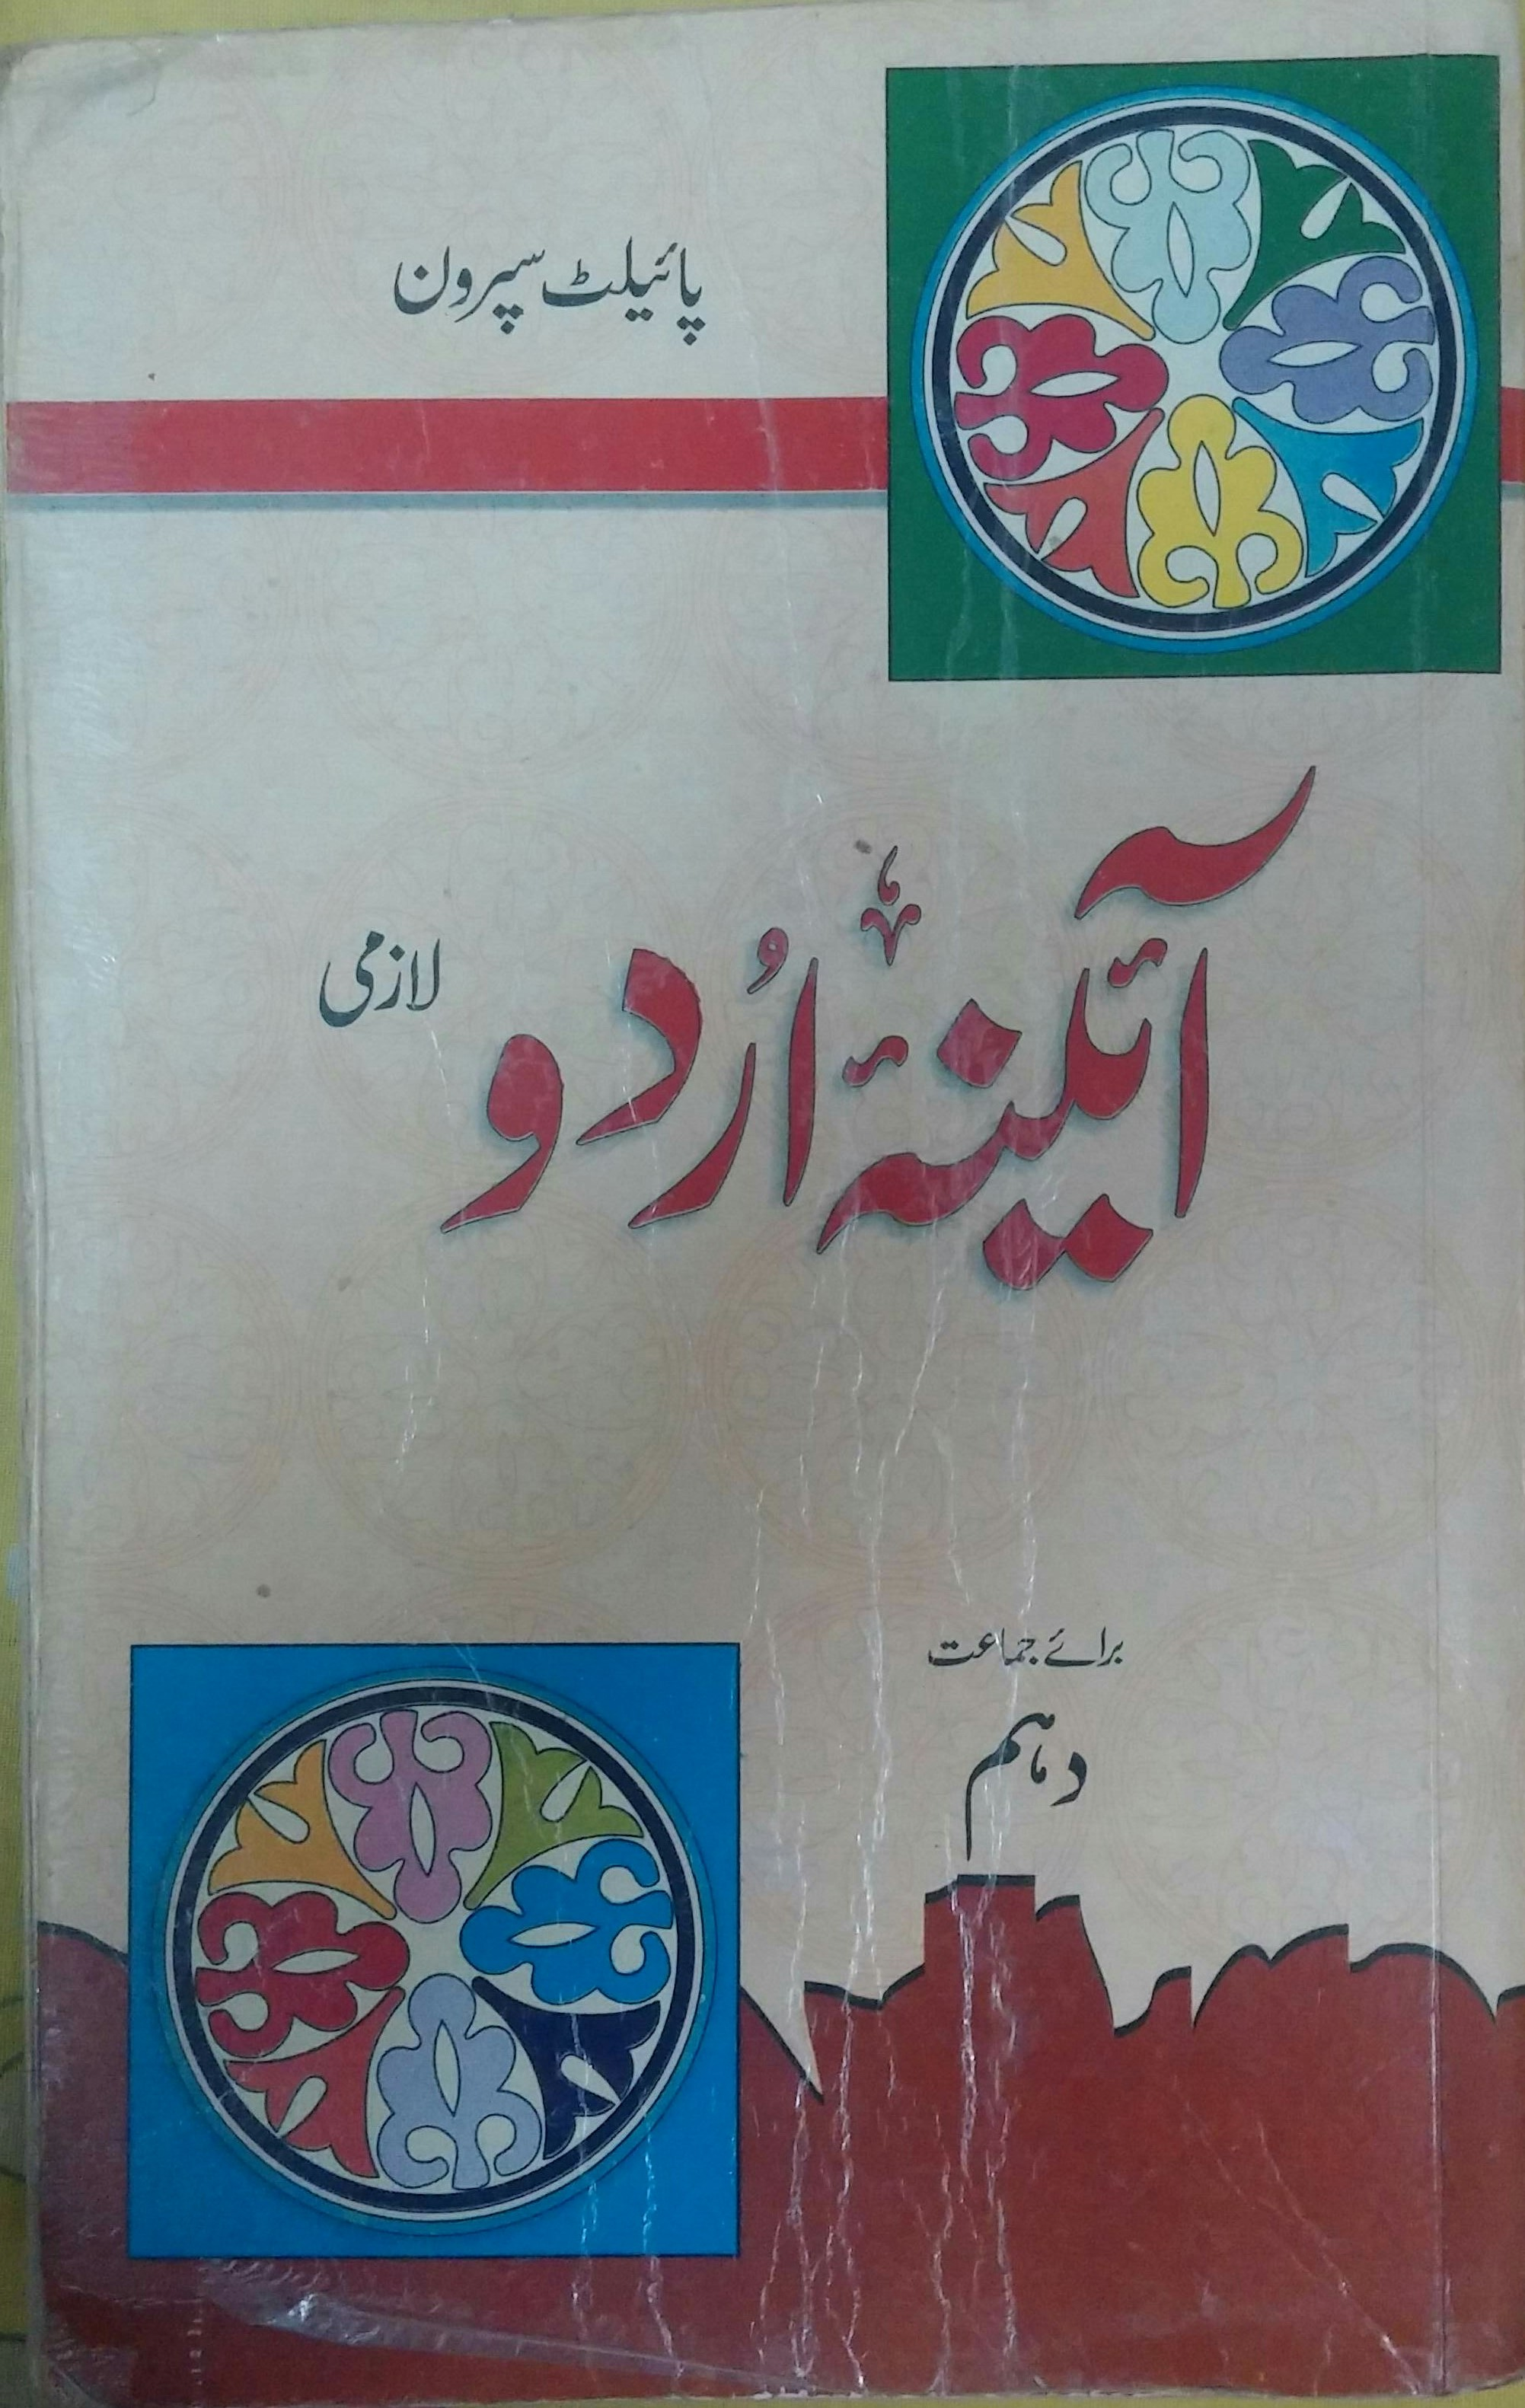 Buy Top Rated Classic Books from Online Marketplace In Pakistan